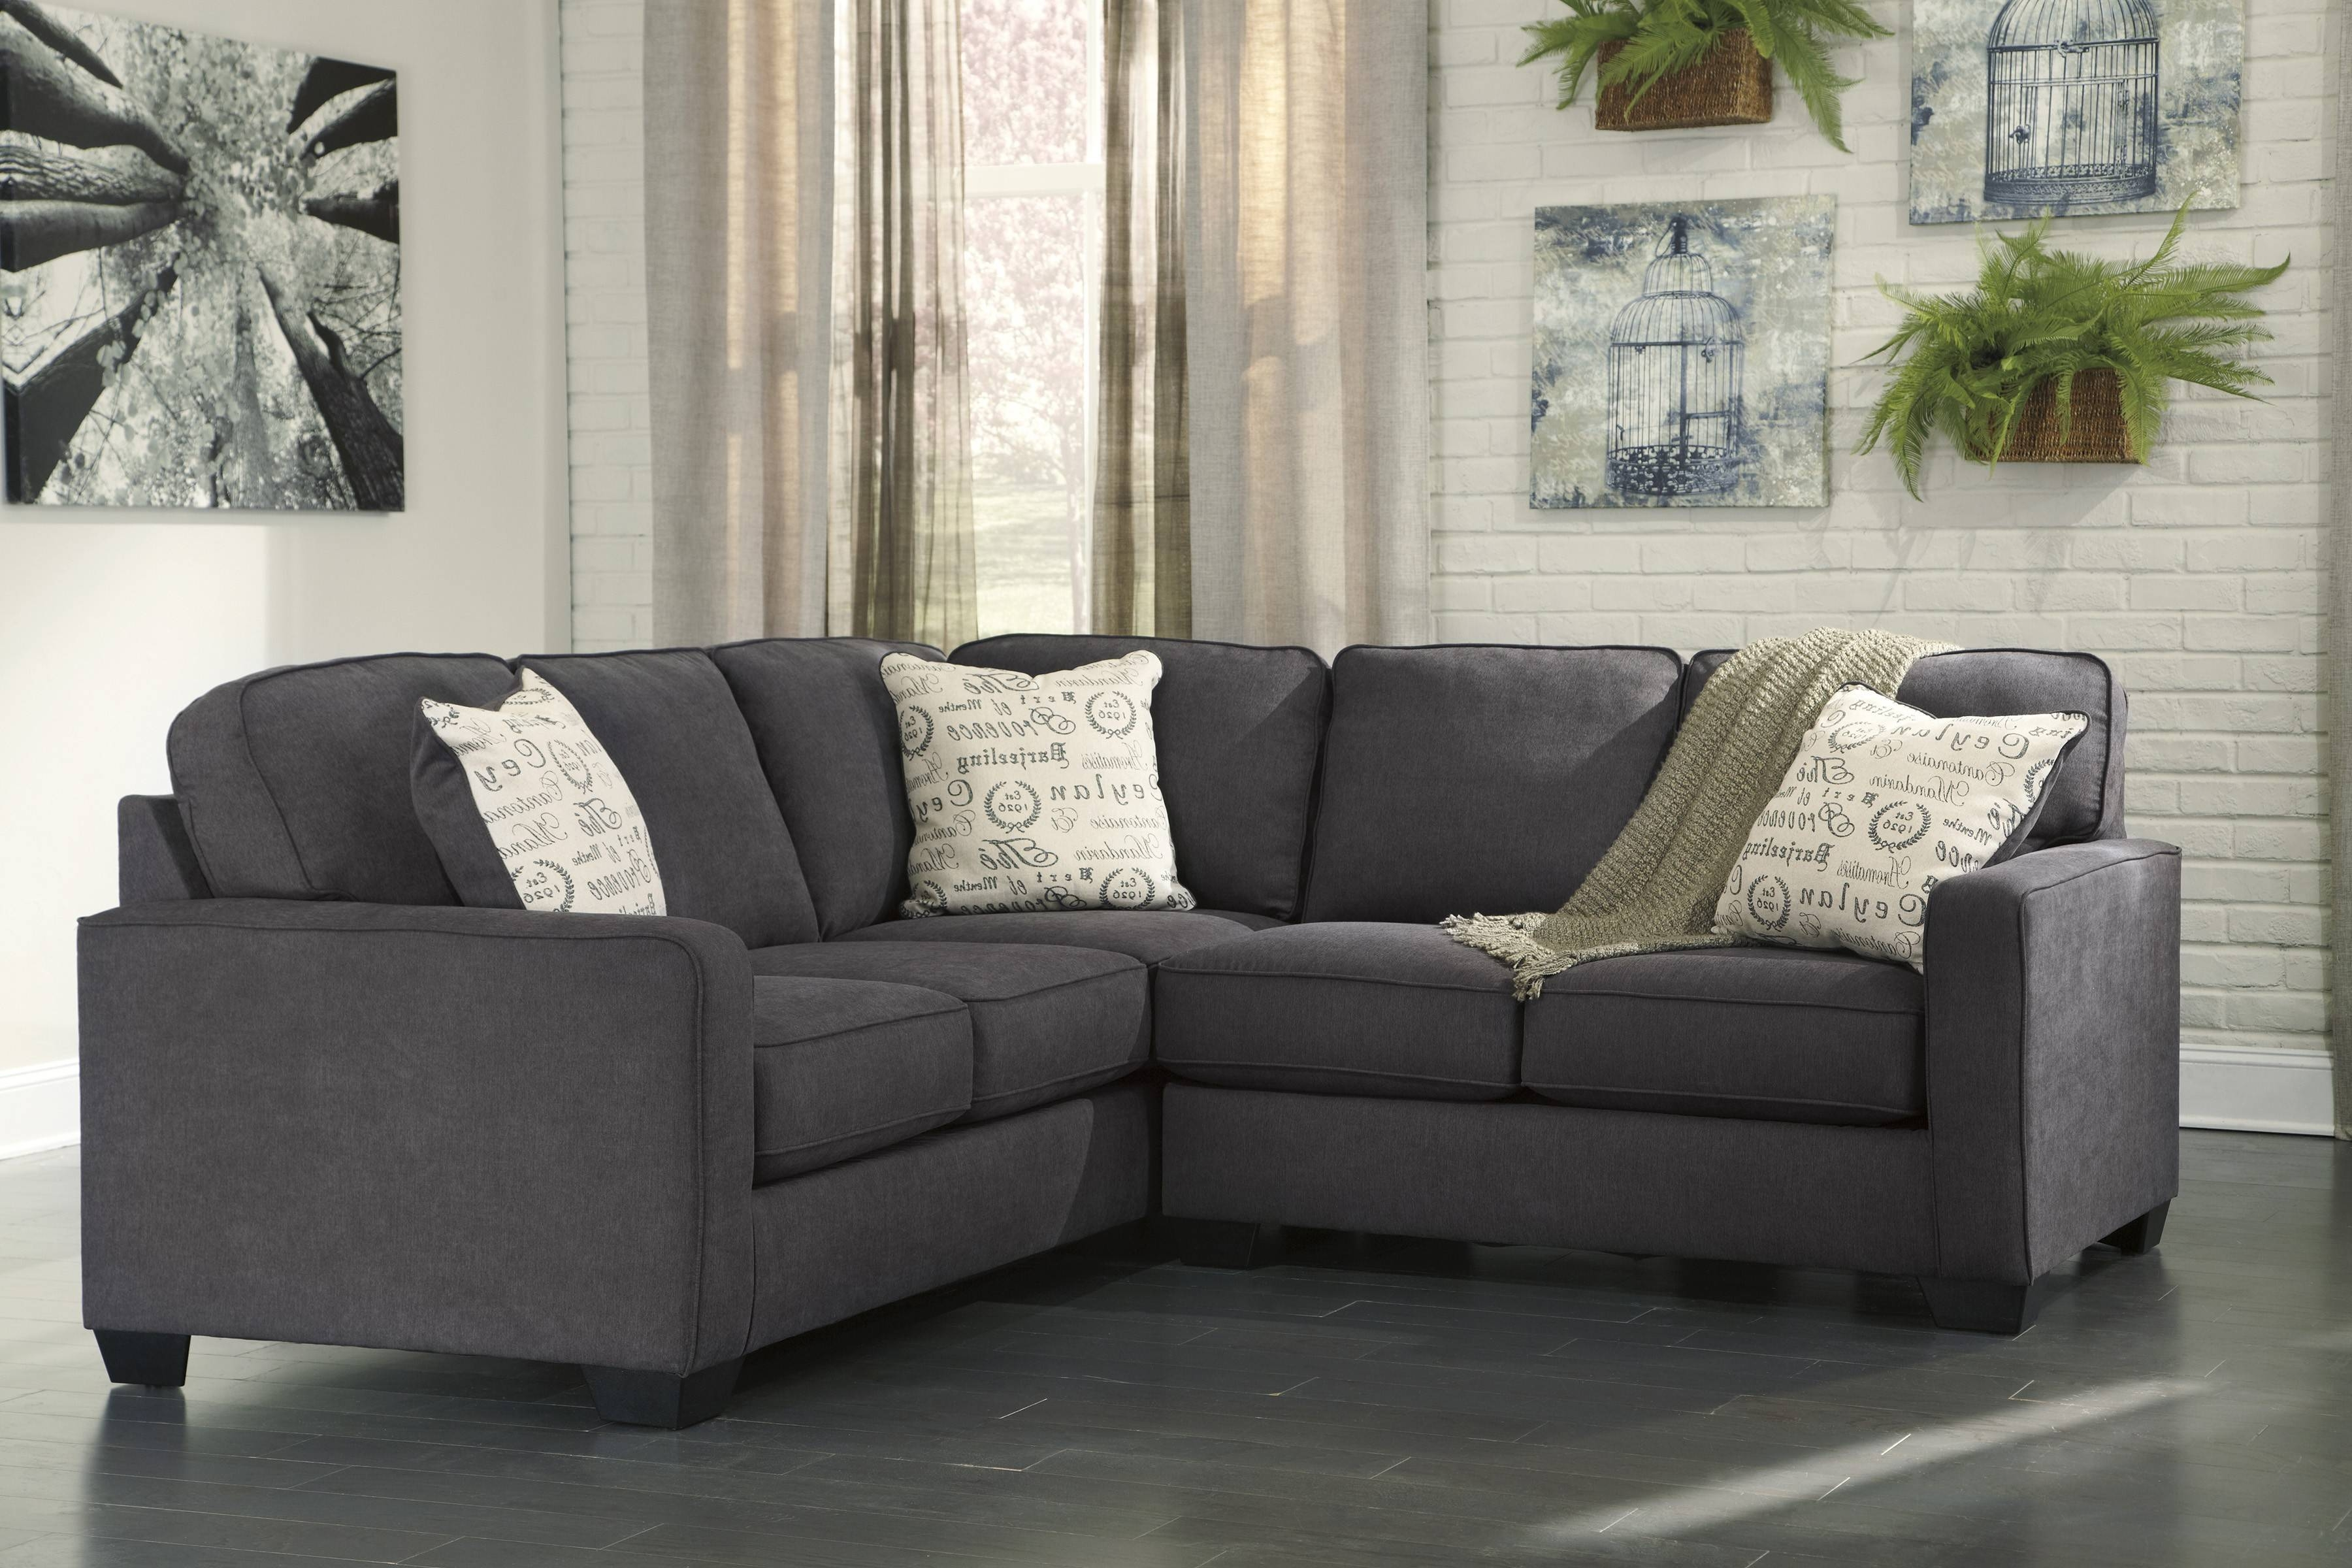 Alenya Charcoal 2-Piece Sectional Sofa For $625.00 - Furnitureusa inside 2 Piece Sofas (Image 4 of 15)